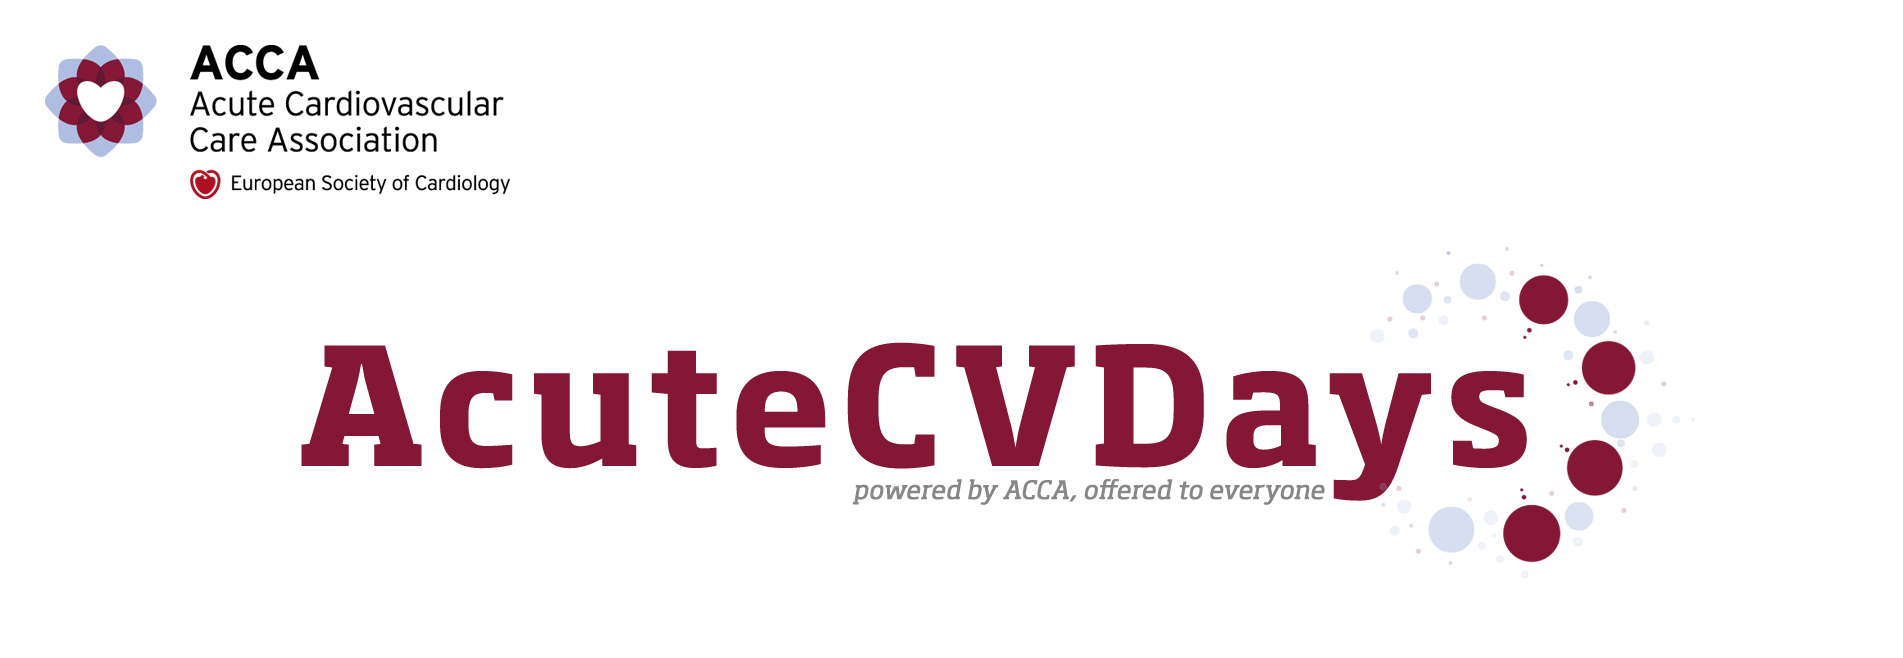 AcuteCVDDays-1903-800-new.png